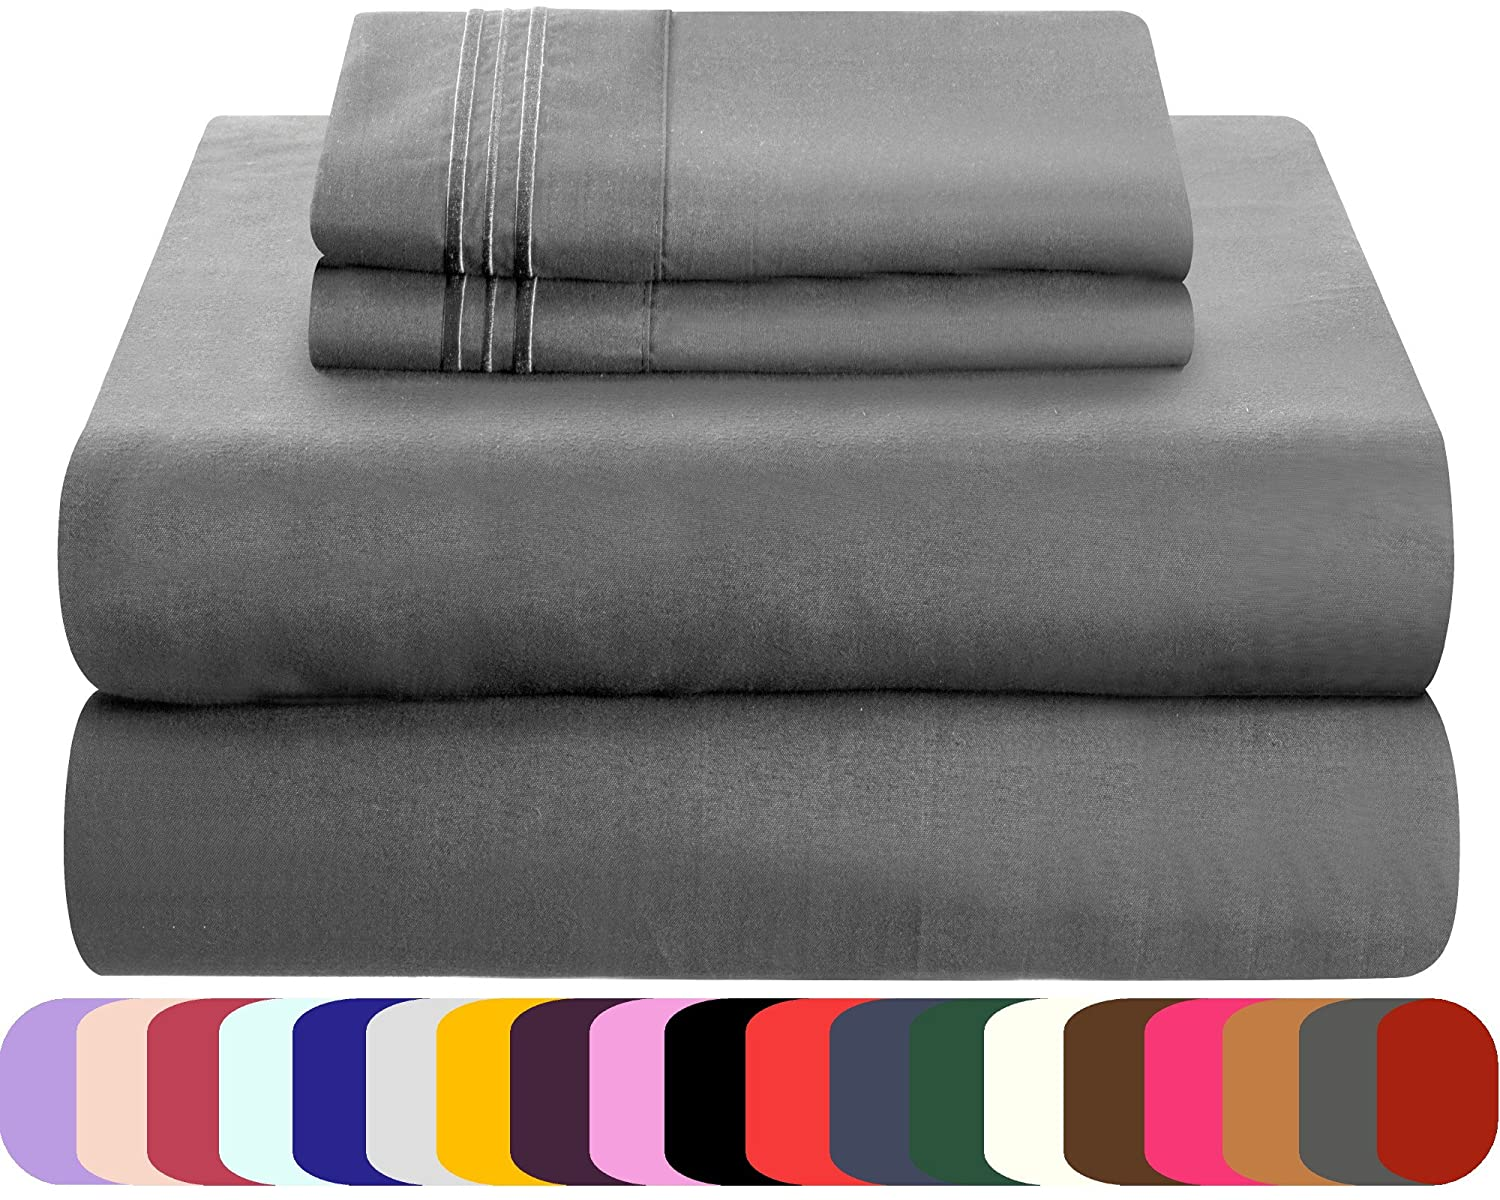 Mezzati Luxury Bed Sheets Set - Sale Gray, Queen